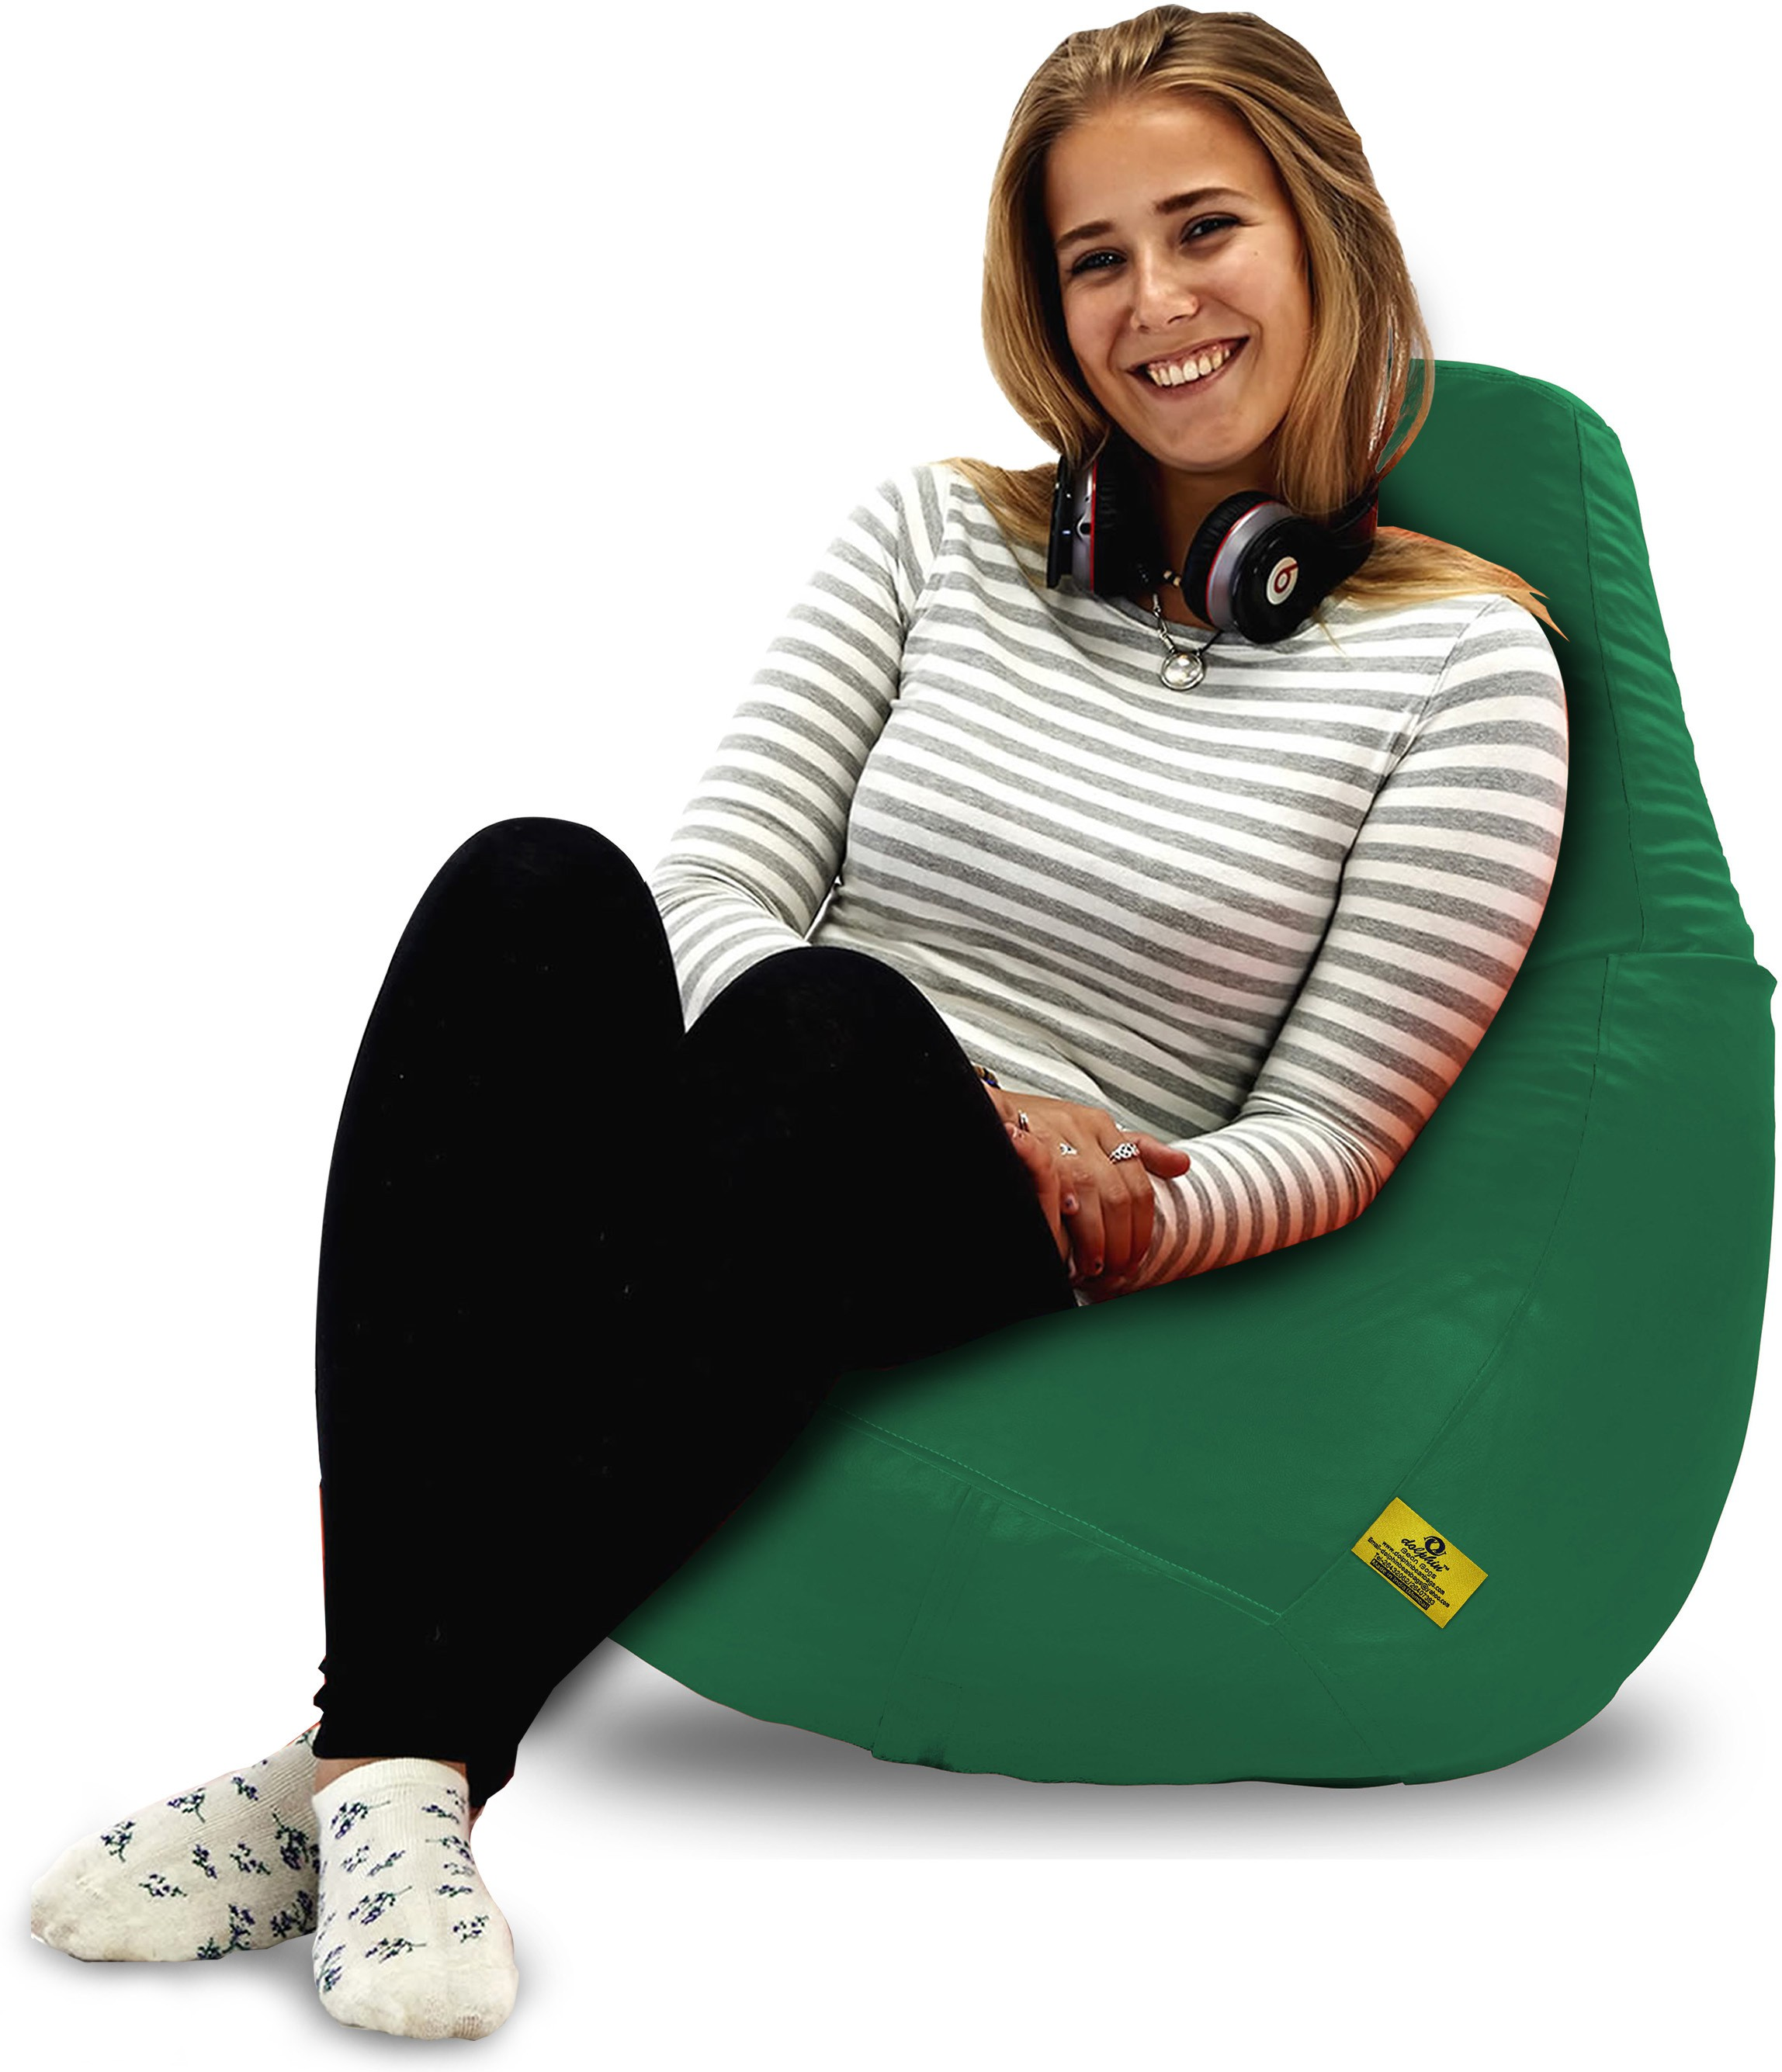 View Dolphin Bean Bags XL Dolphin Original Xl Bean Bag-Bottle Green-With Fillers/Beans Bean Bag  With Bean Filling(Green) Furniture (Dolphin Bean Bags)